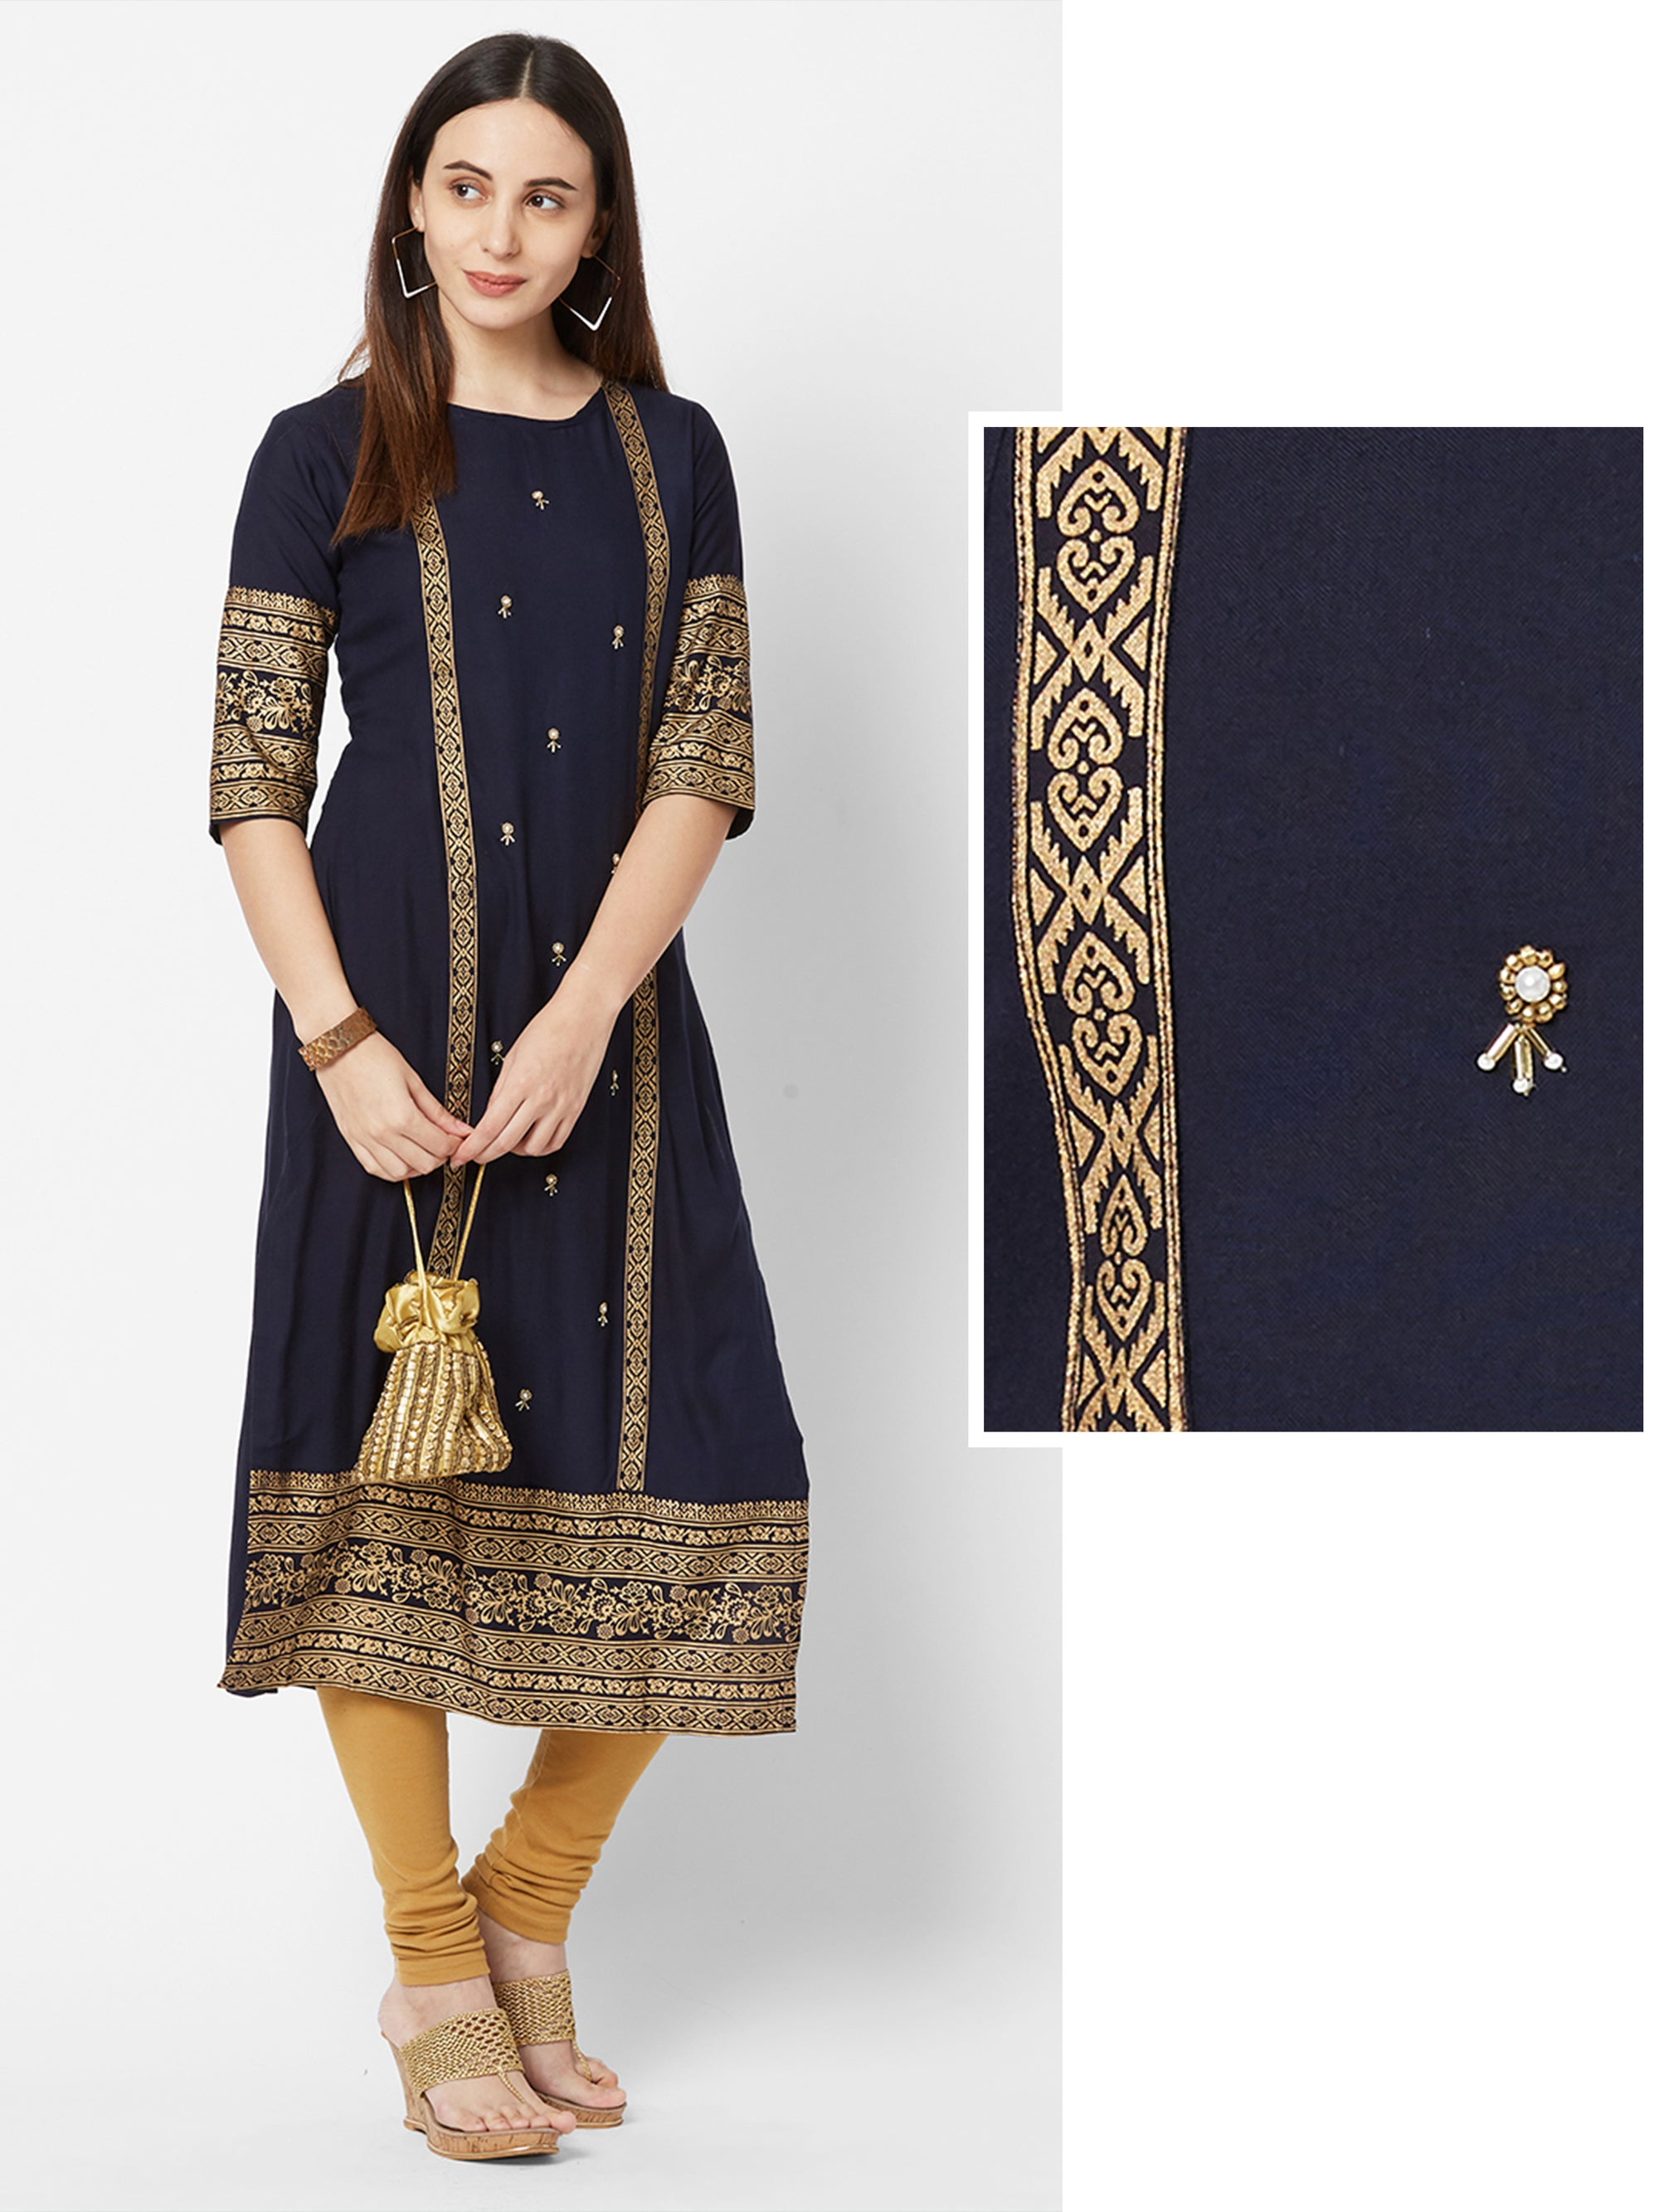 Cutdana & Bead work Embellished Foil Printed Kurta – Navy Blue